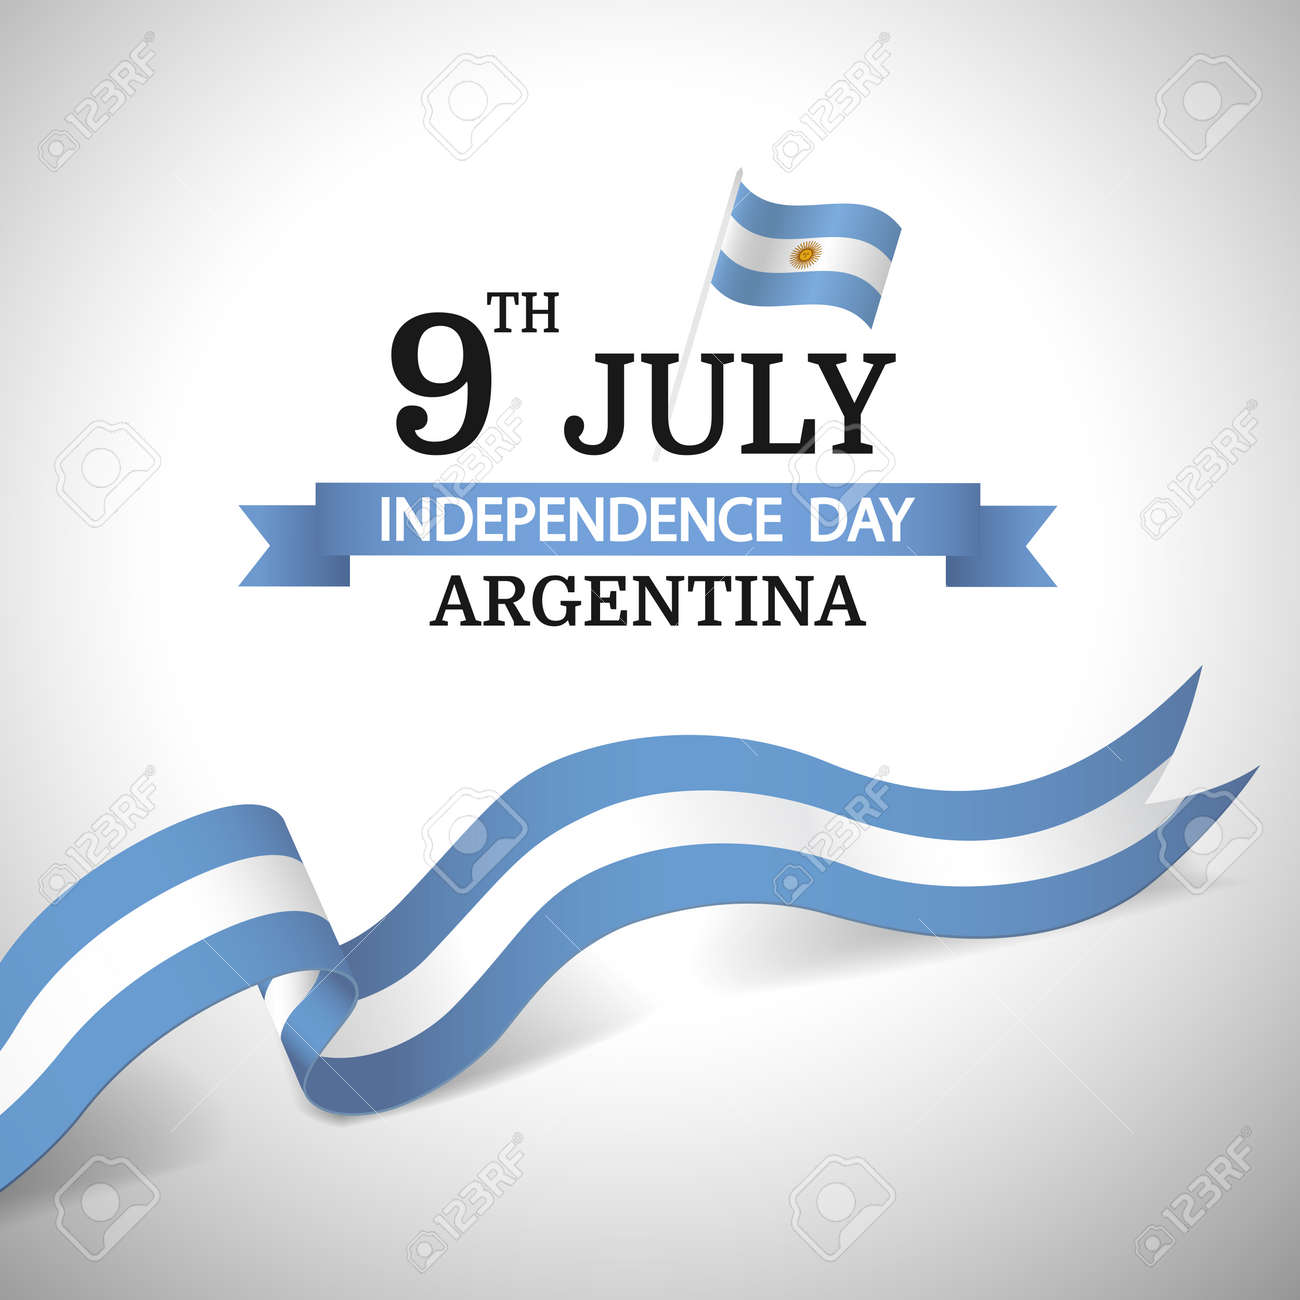 Vector Illustration of Independence Day of Argentina. - 169318181